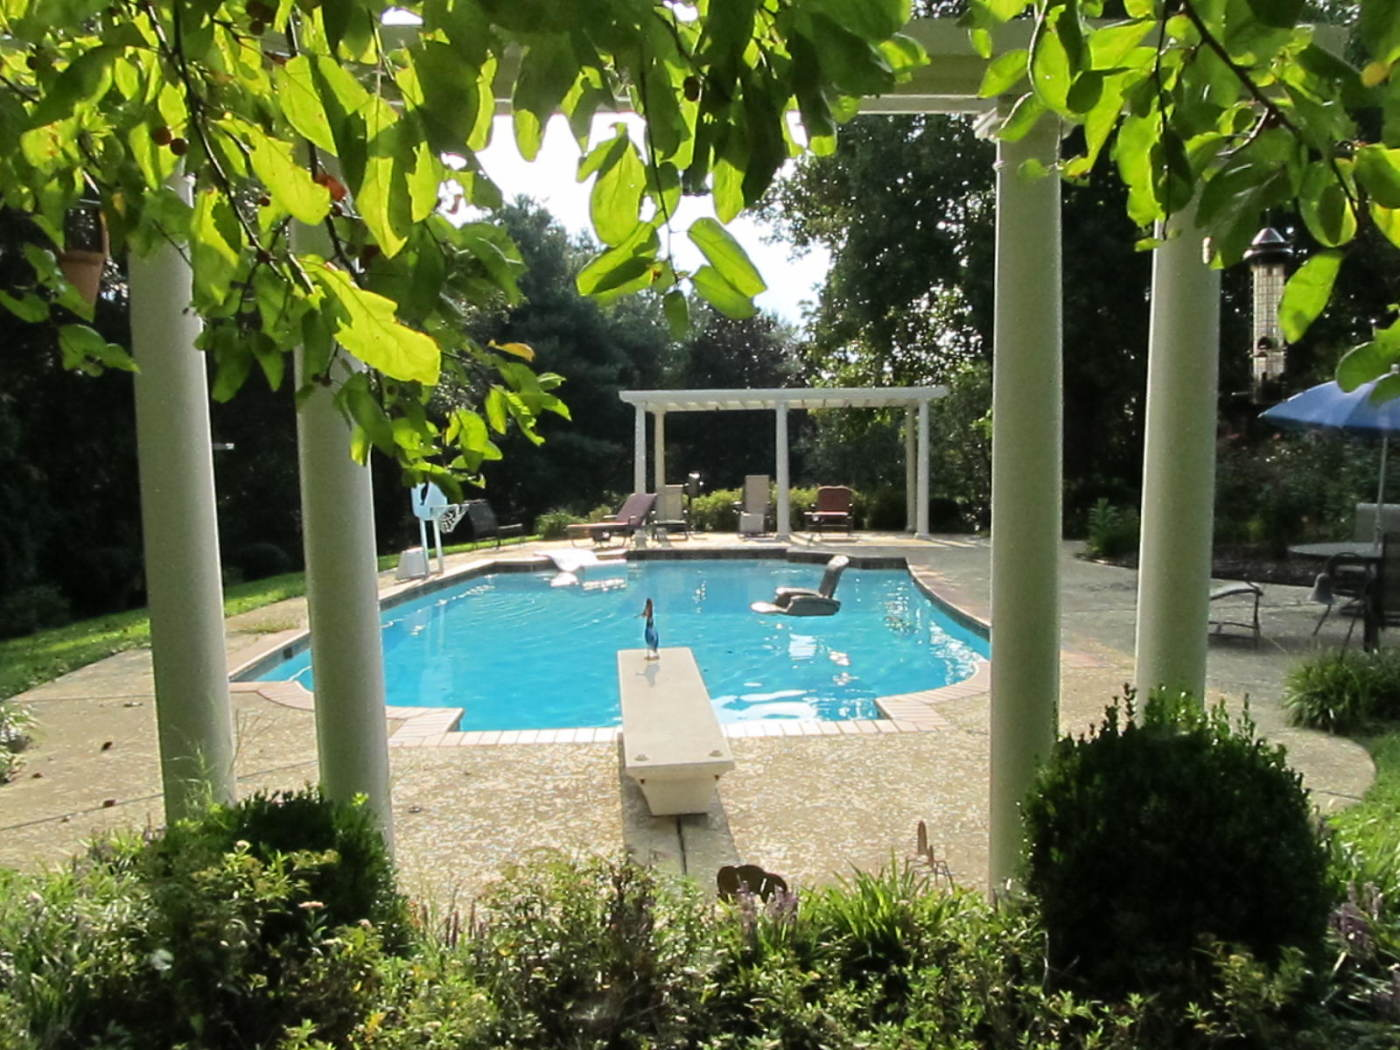 Levitt Pool and Arbors